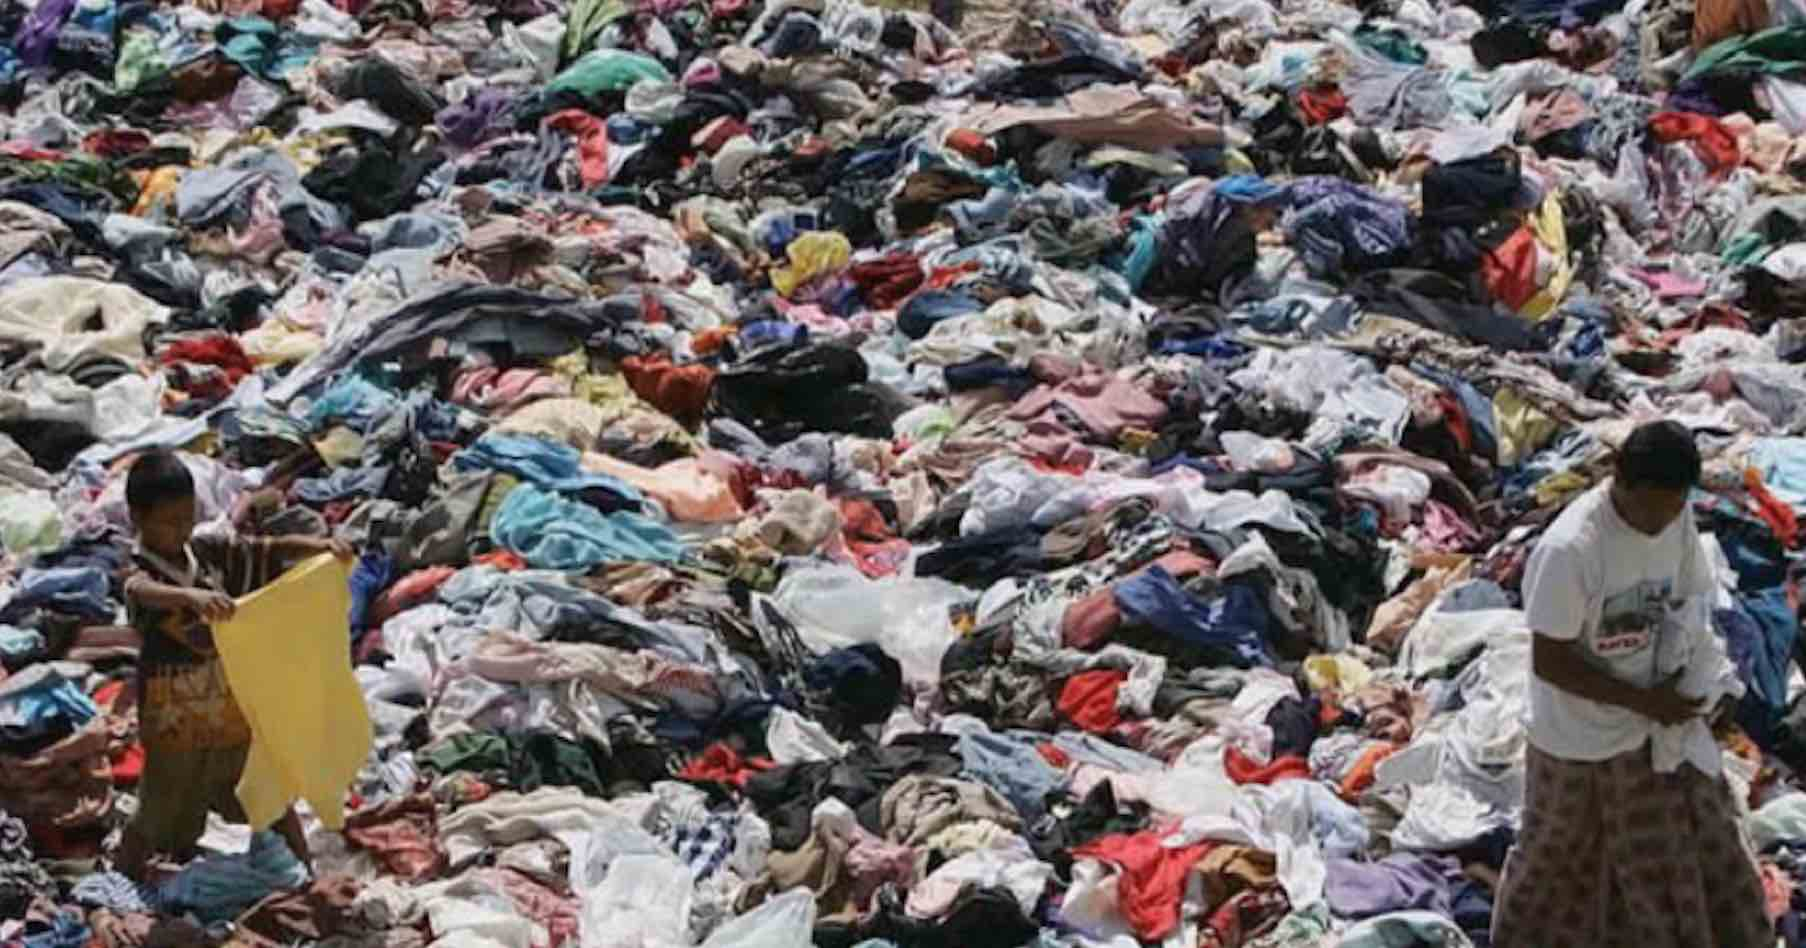 Campaigners respond angrily to short-sighted Government response on reducing plastic waste in fashion